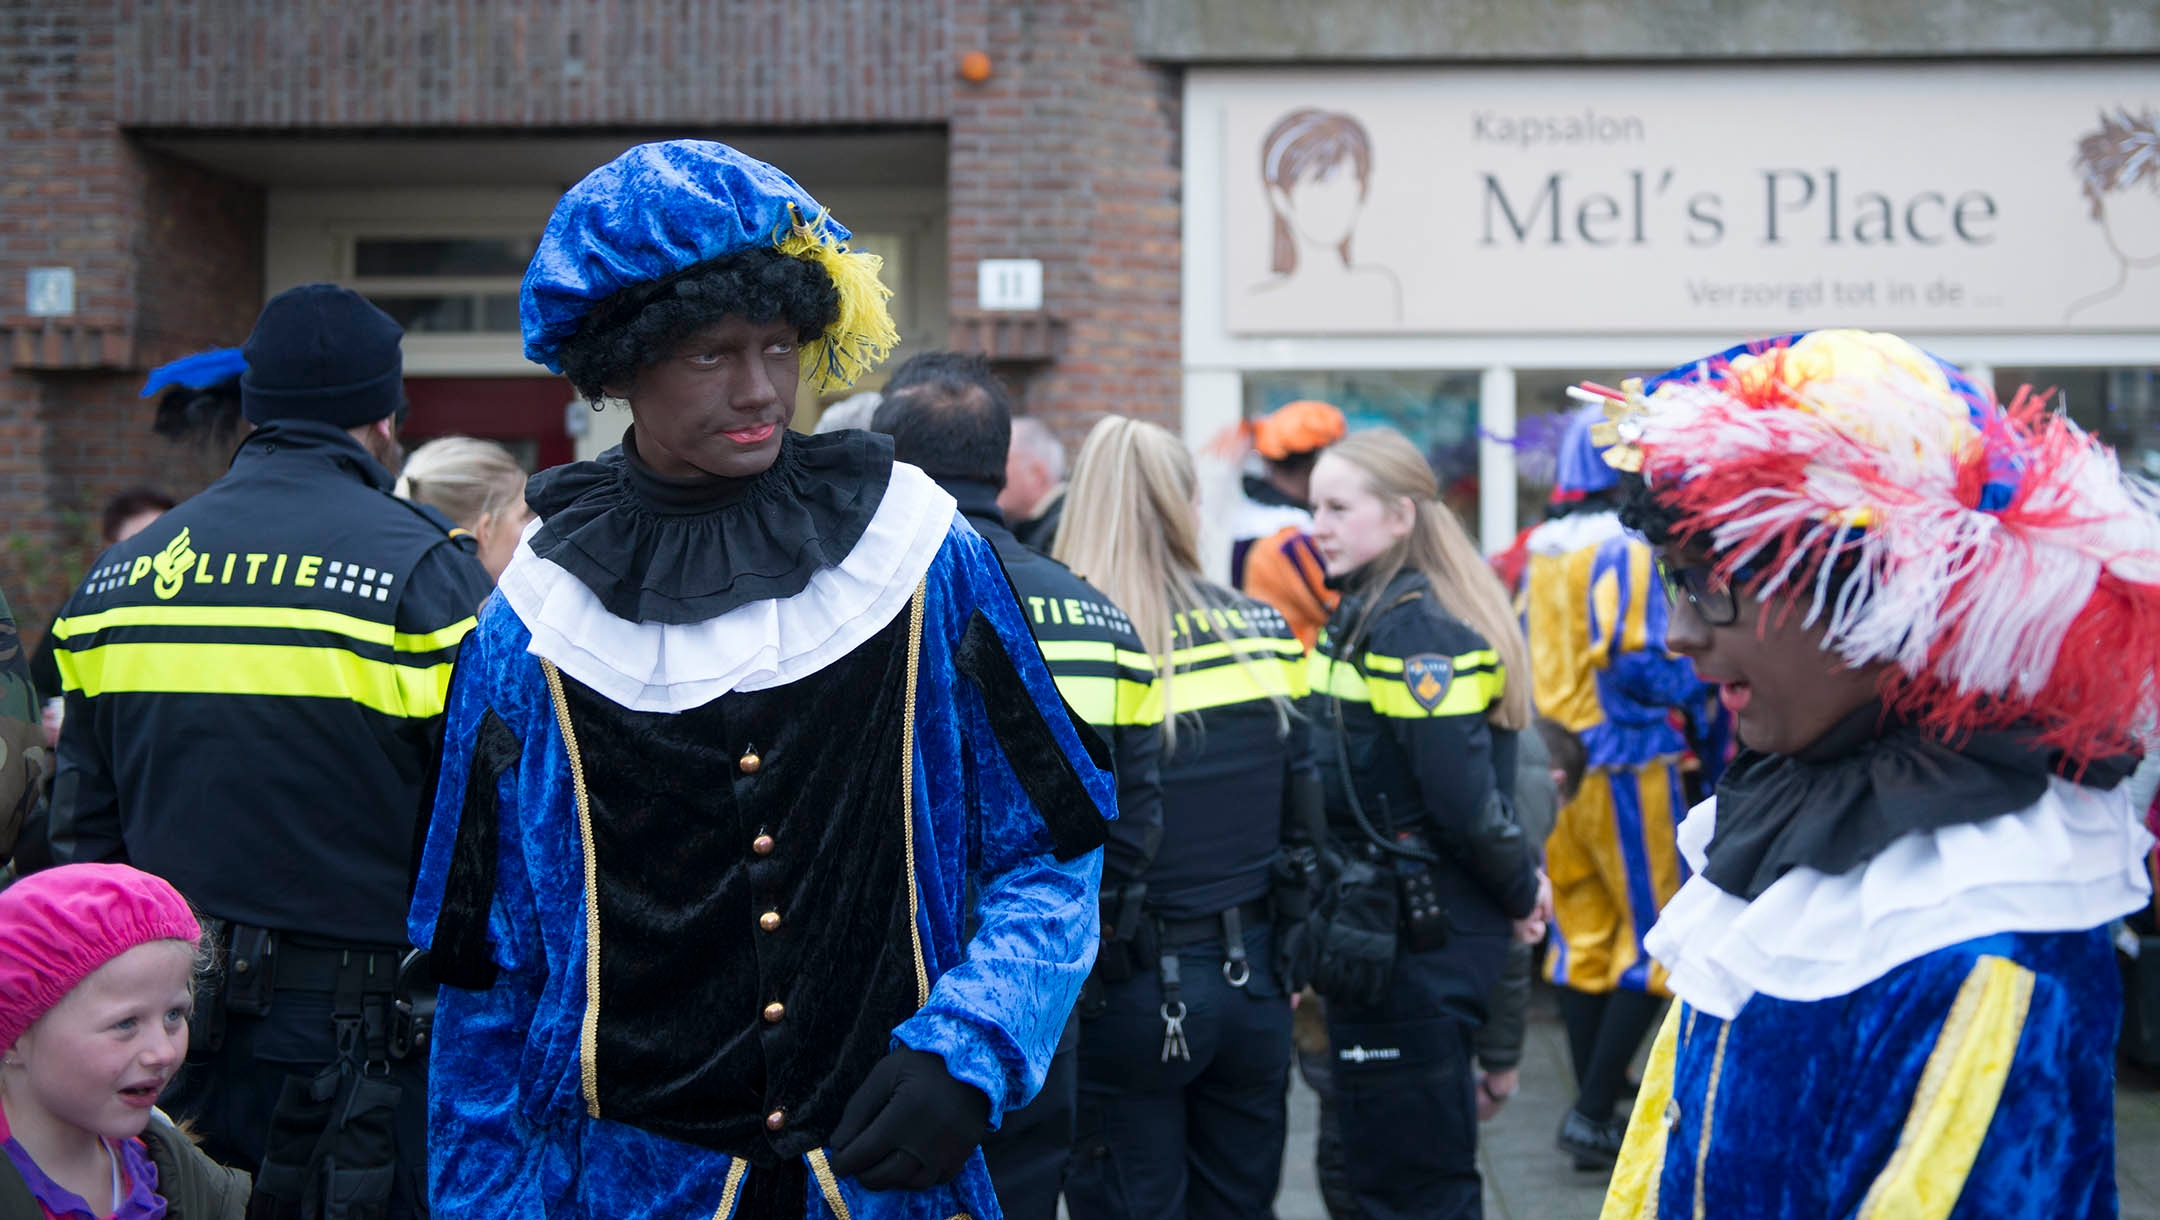 A man dressed like Black Pete entertaining children under police protection in northern Amsterdam, the Netherlands on Nov. 16, 2019. (Cnaan Liphshiz)